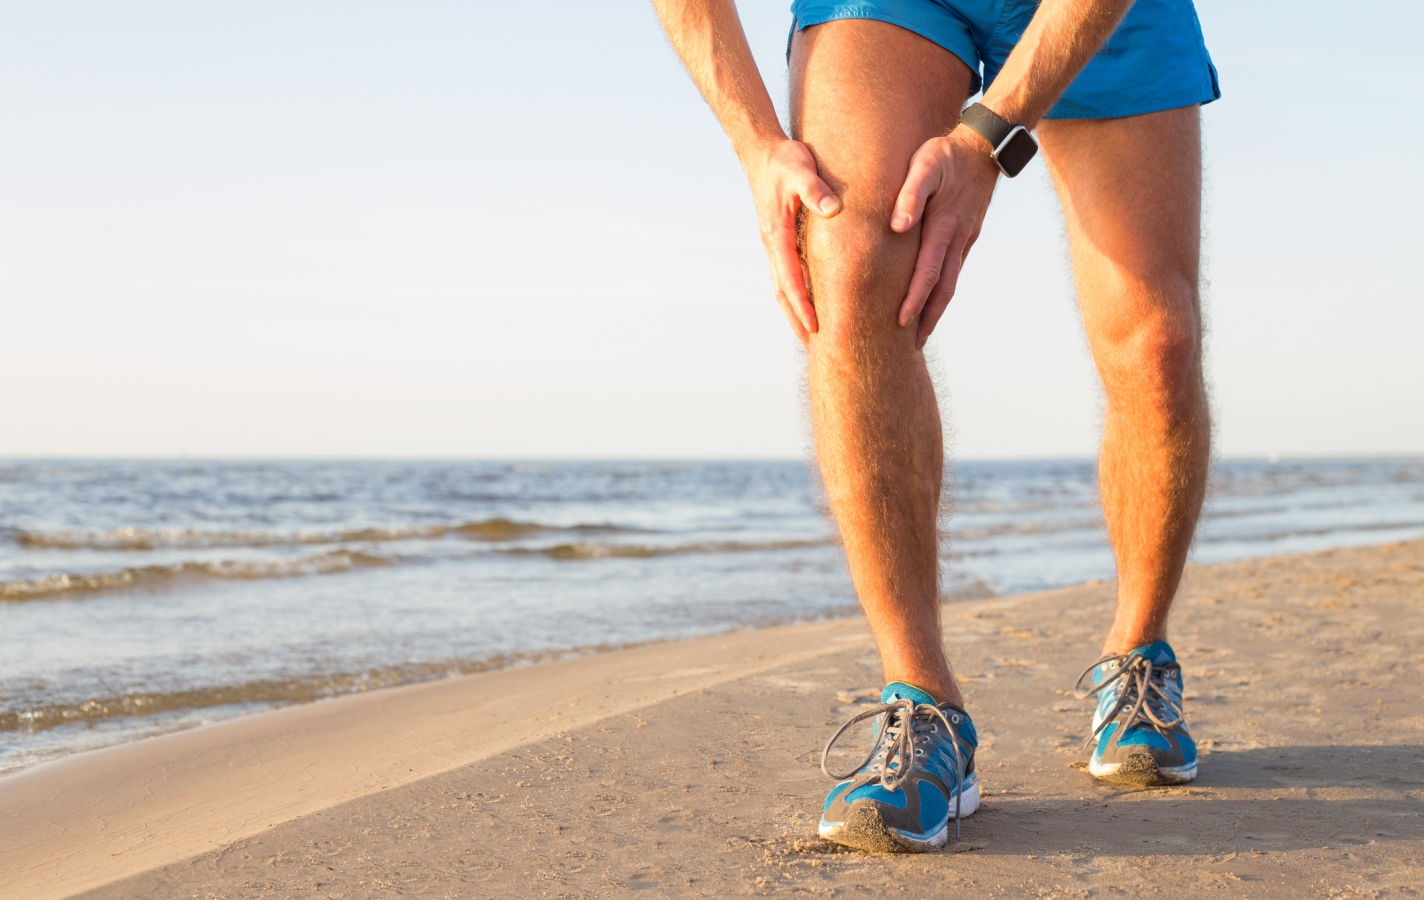 Man running on beach having a pain in his knee